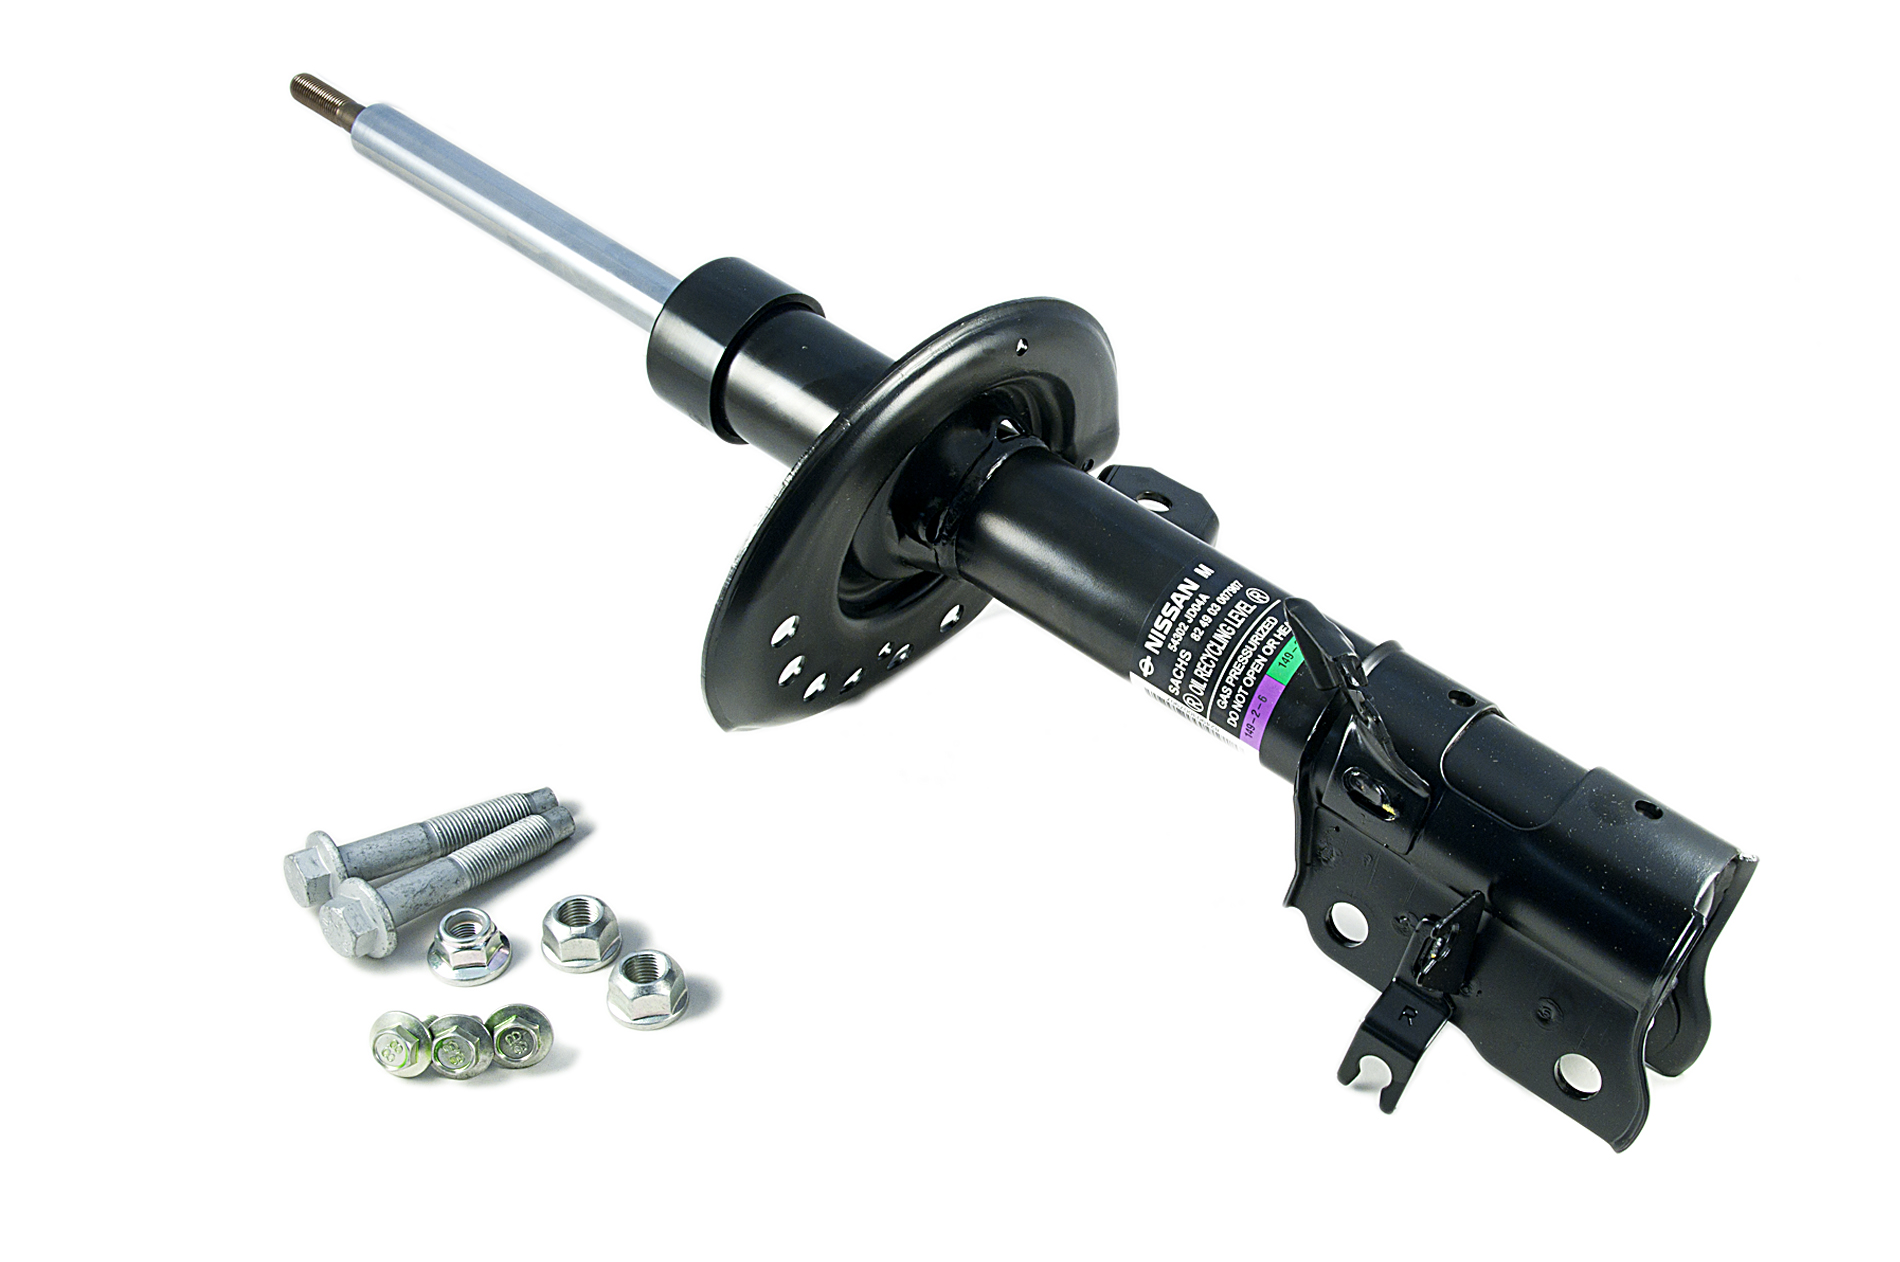 Shock Absorber Replacement : Nissan qashqai genuine car replacement front shock